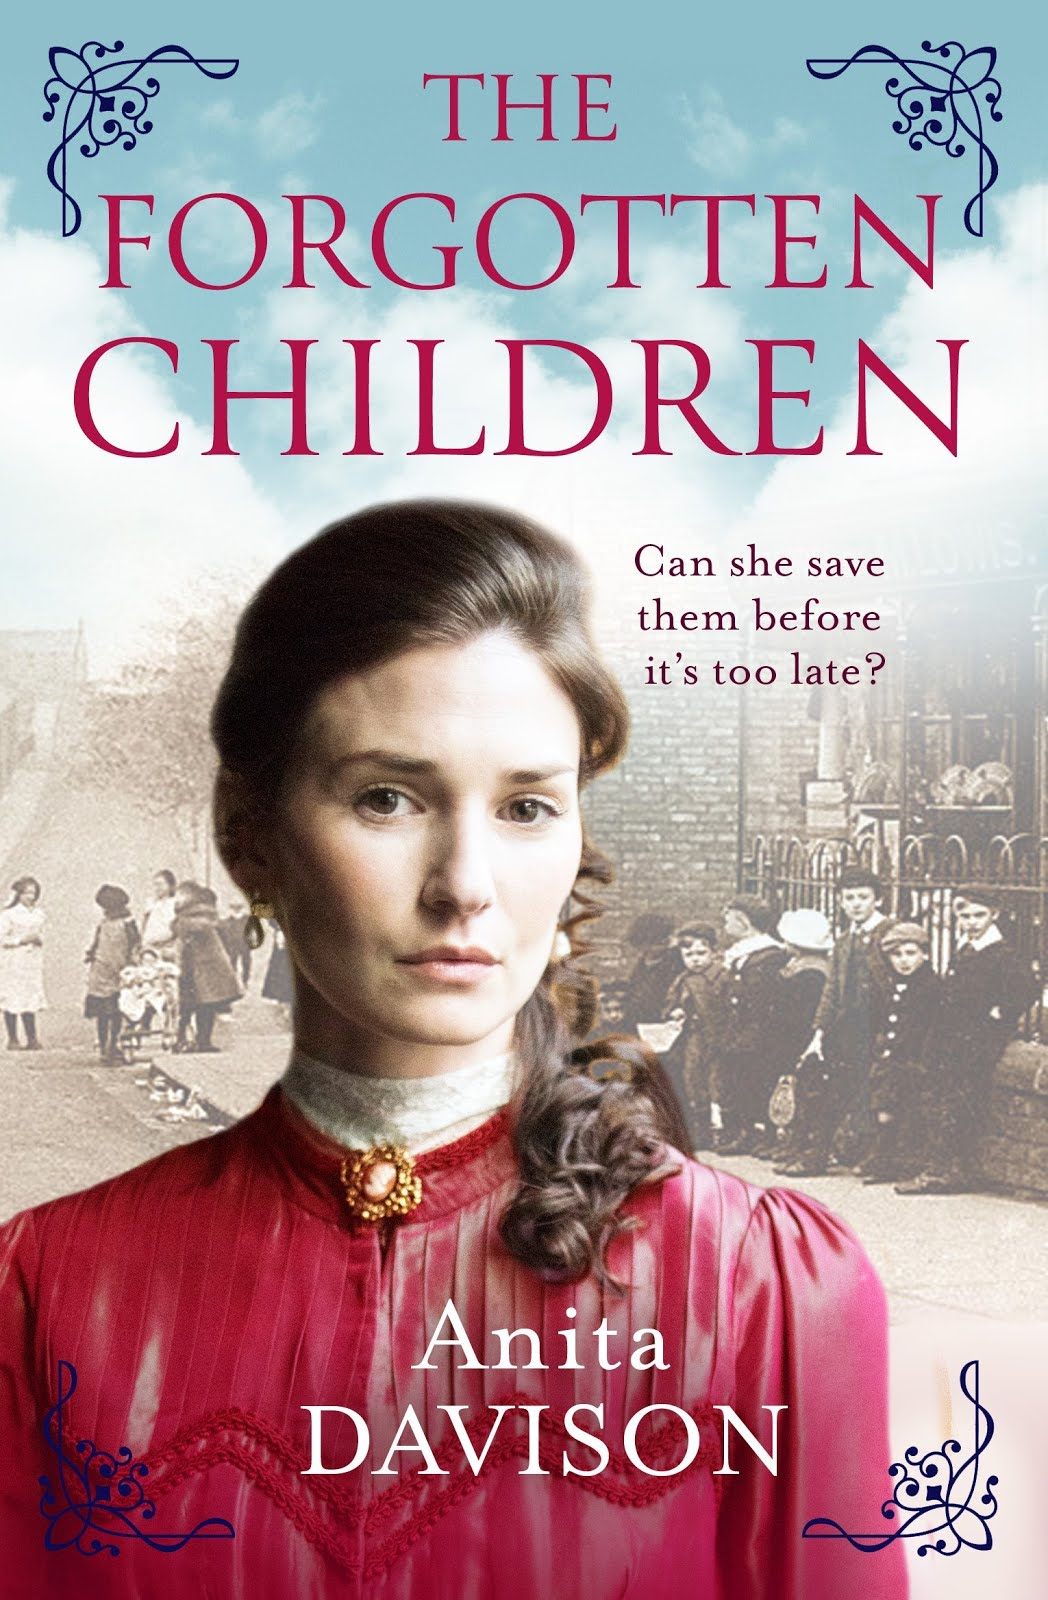 The Forgotten Children by Anita Davison